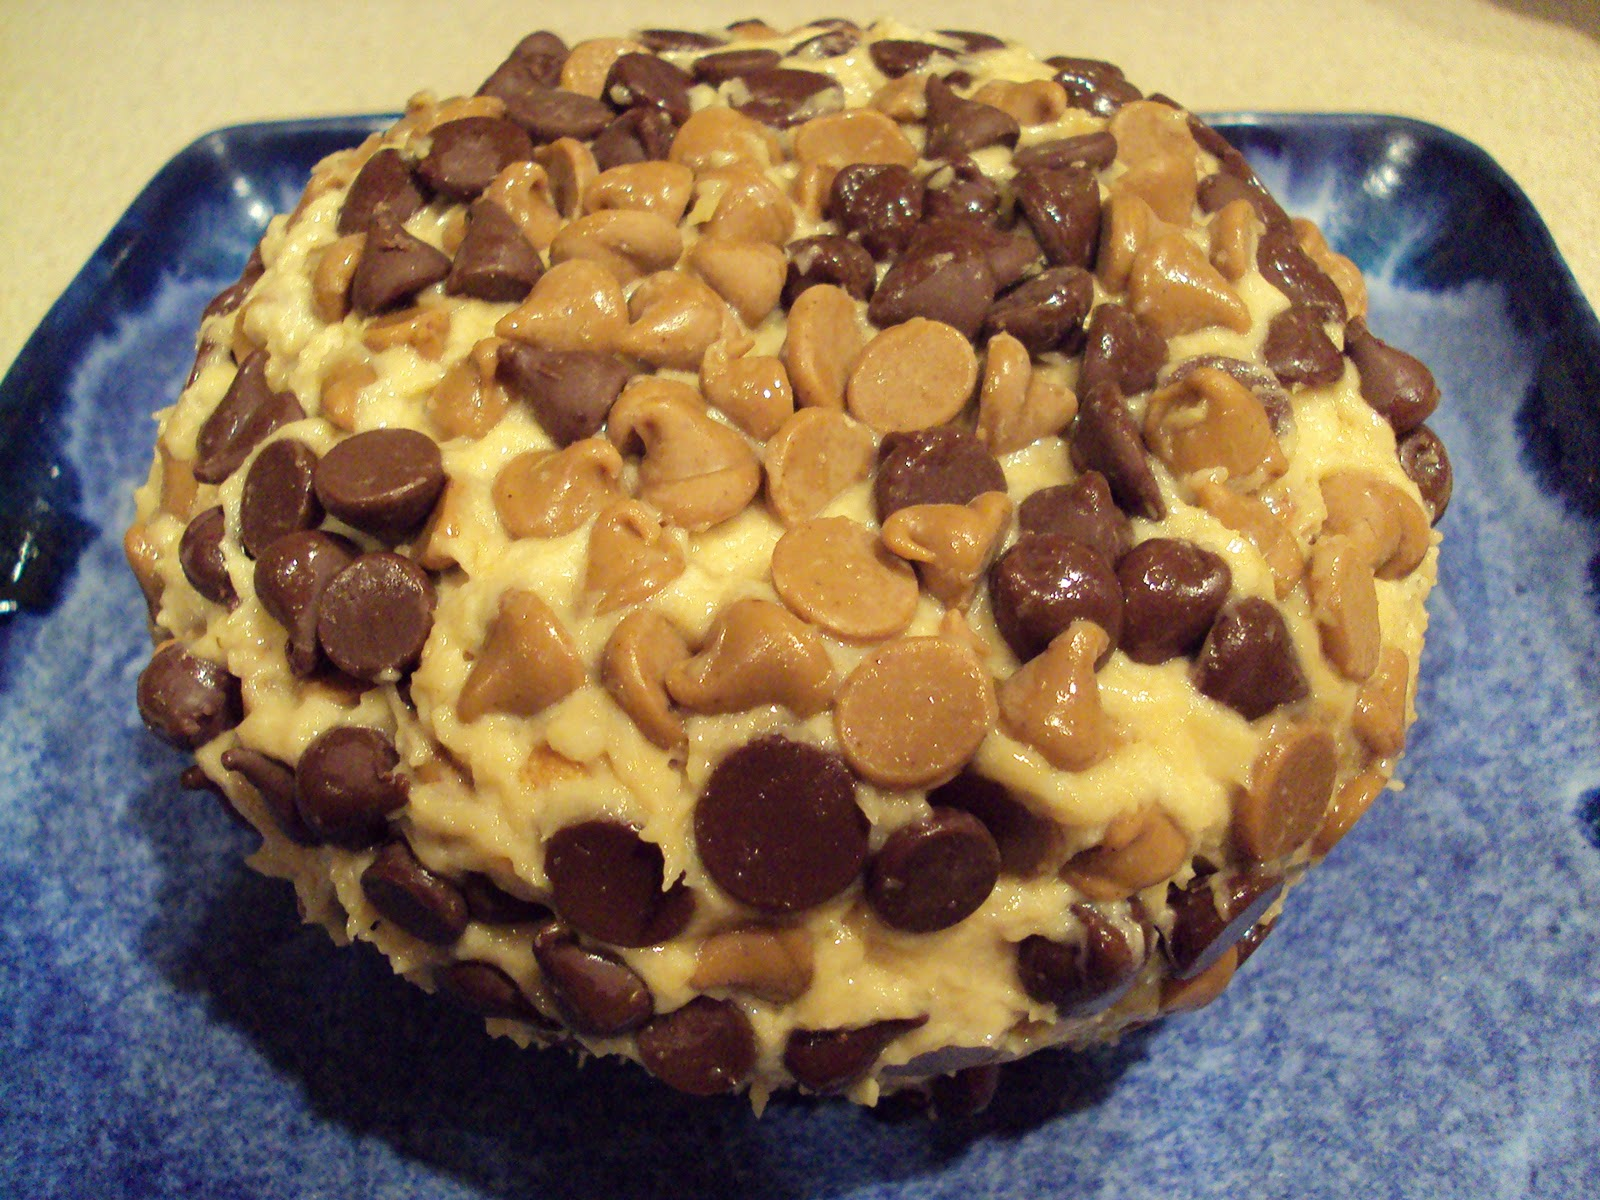 Meal Planning with Connie: Peanut Butter Chocolate Chip Cheese Ball